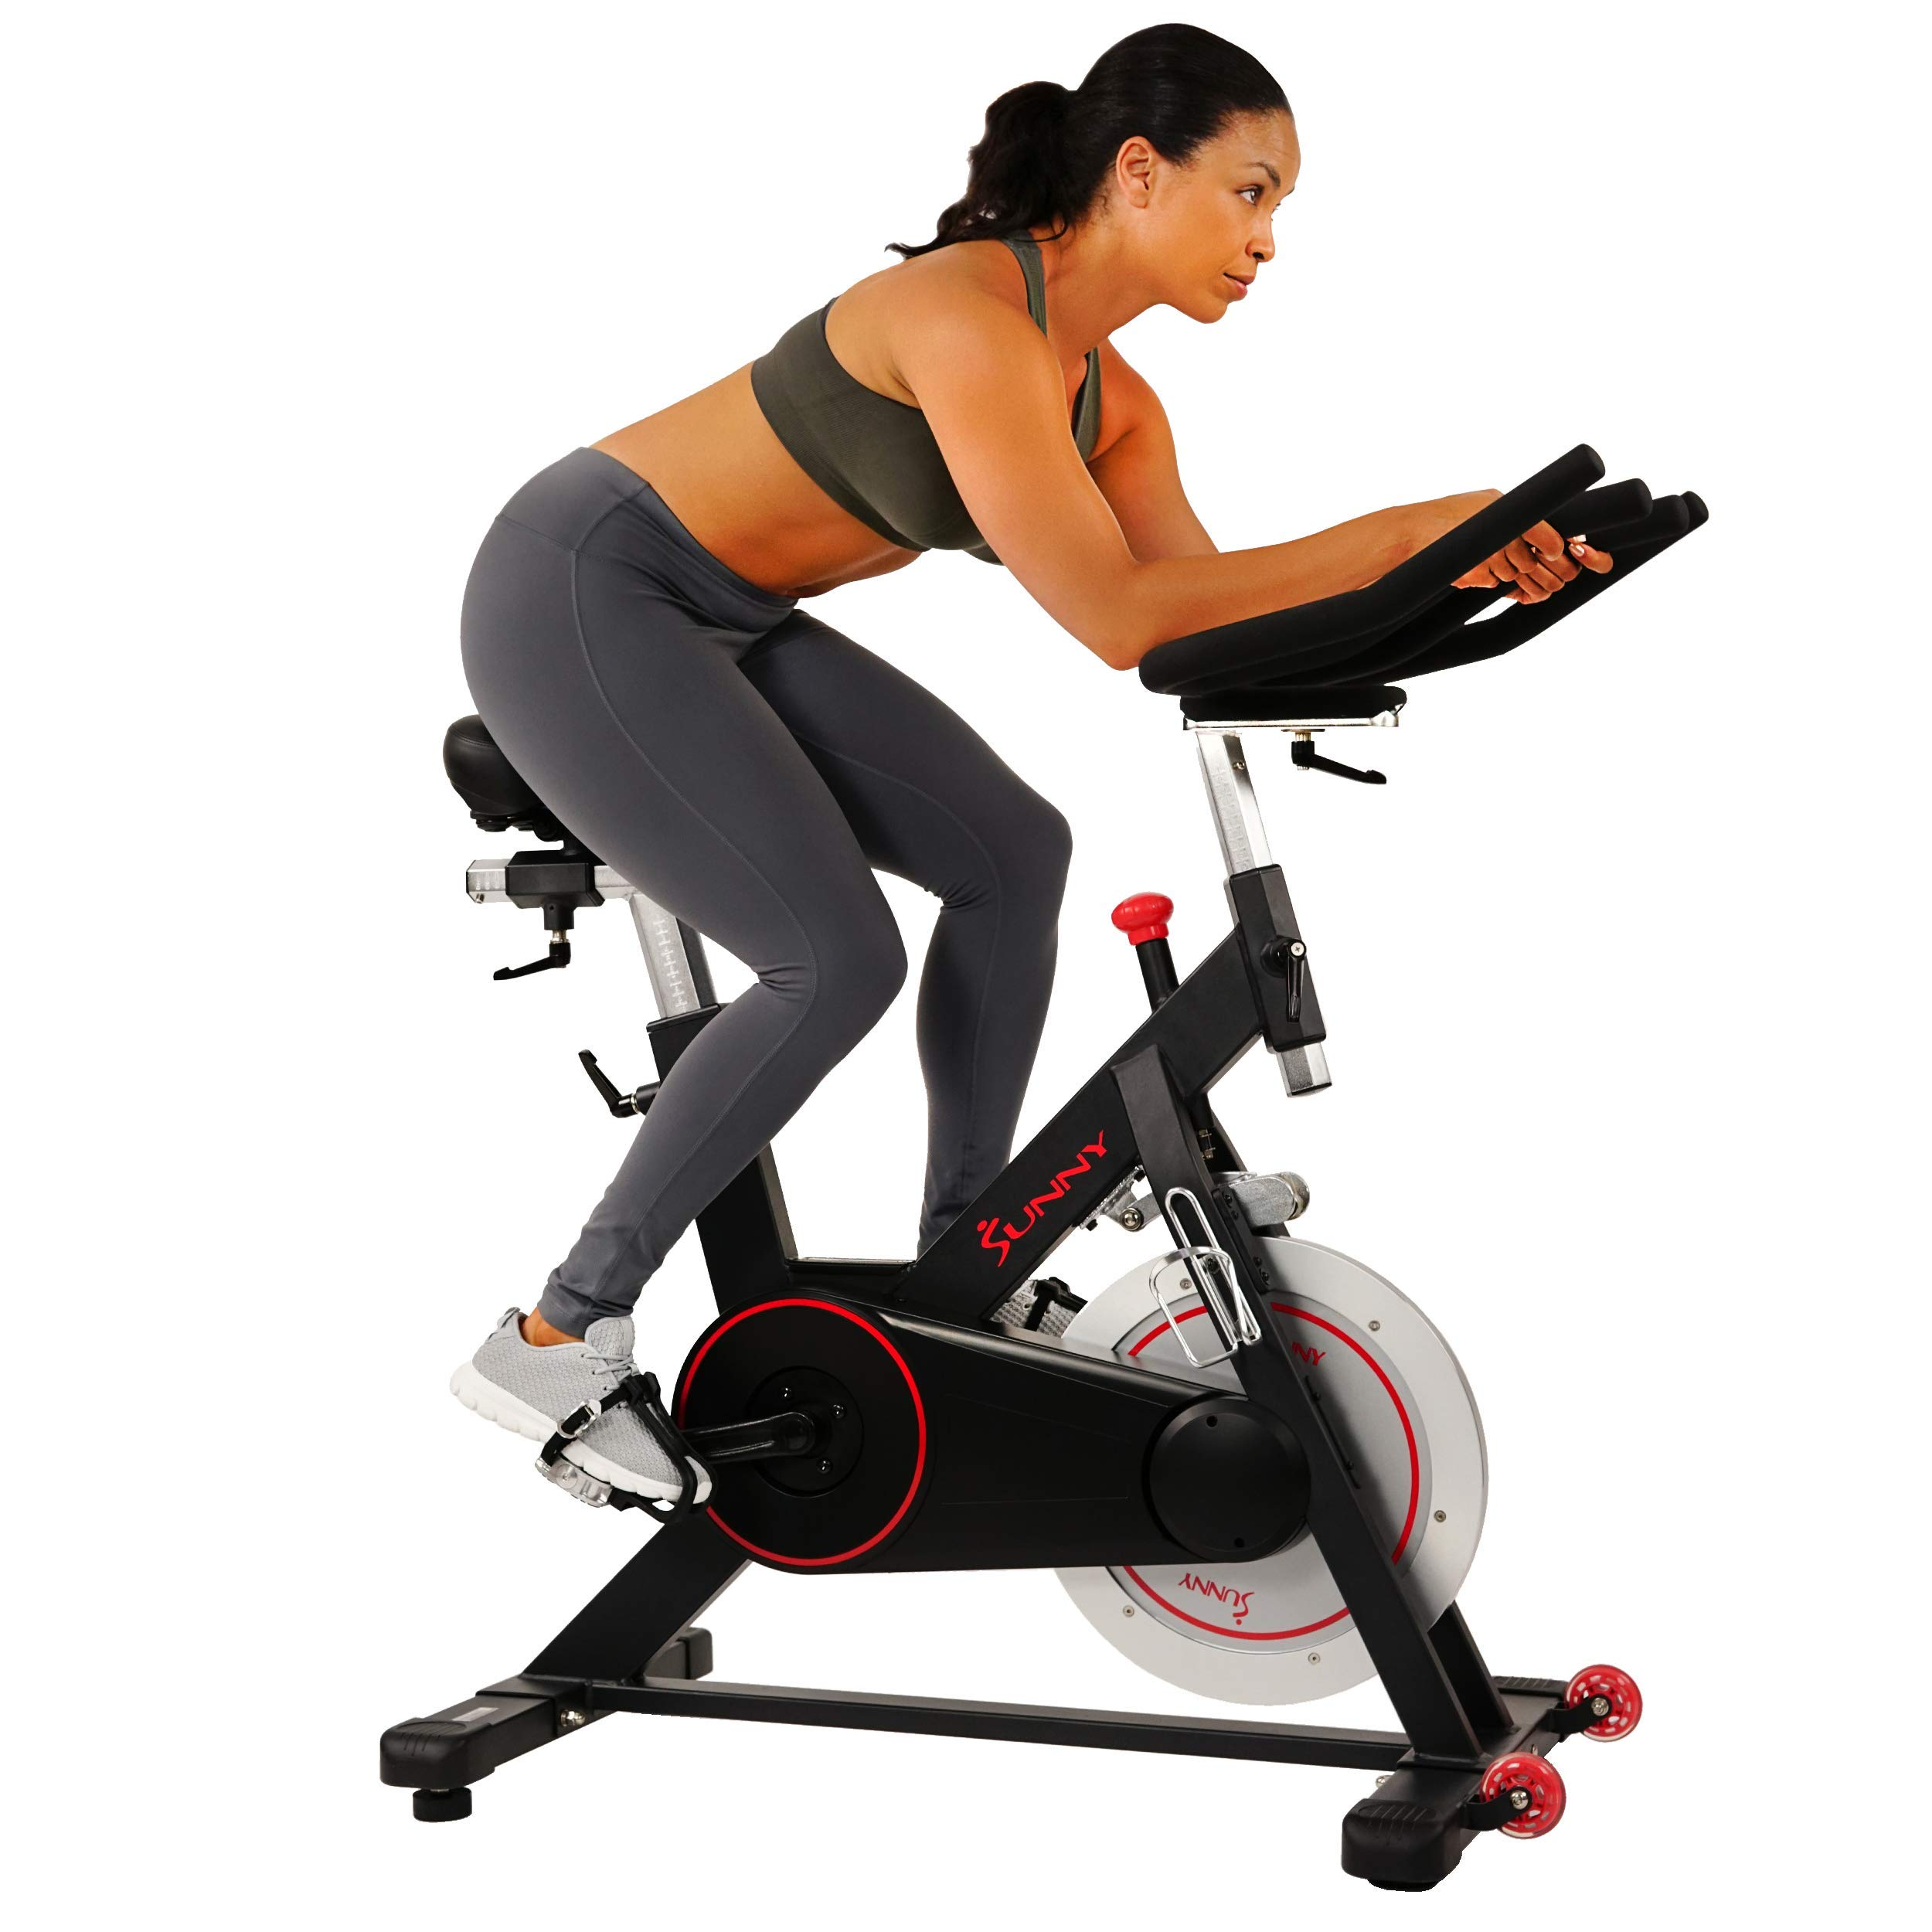 Sunny Health & Fitness Magnetic Belt Drive Indoor Cycling Bike with 44 lb Flywheel and Large Device Holder, Black, Model…